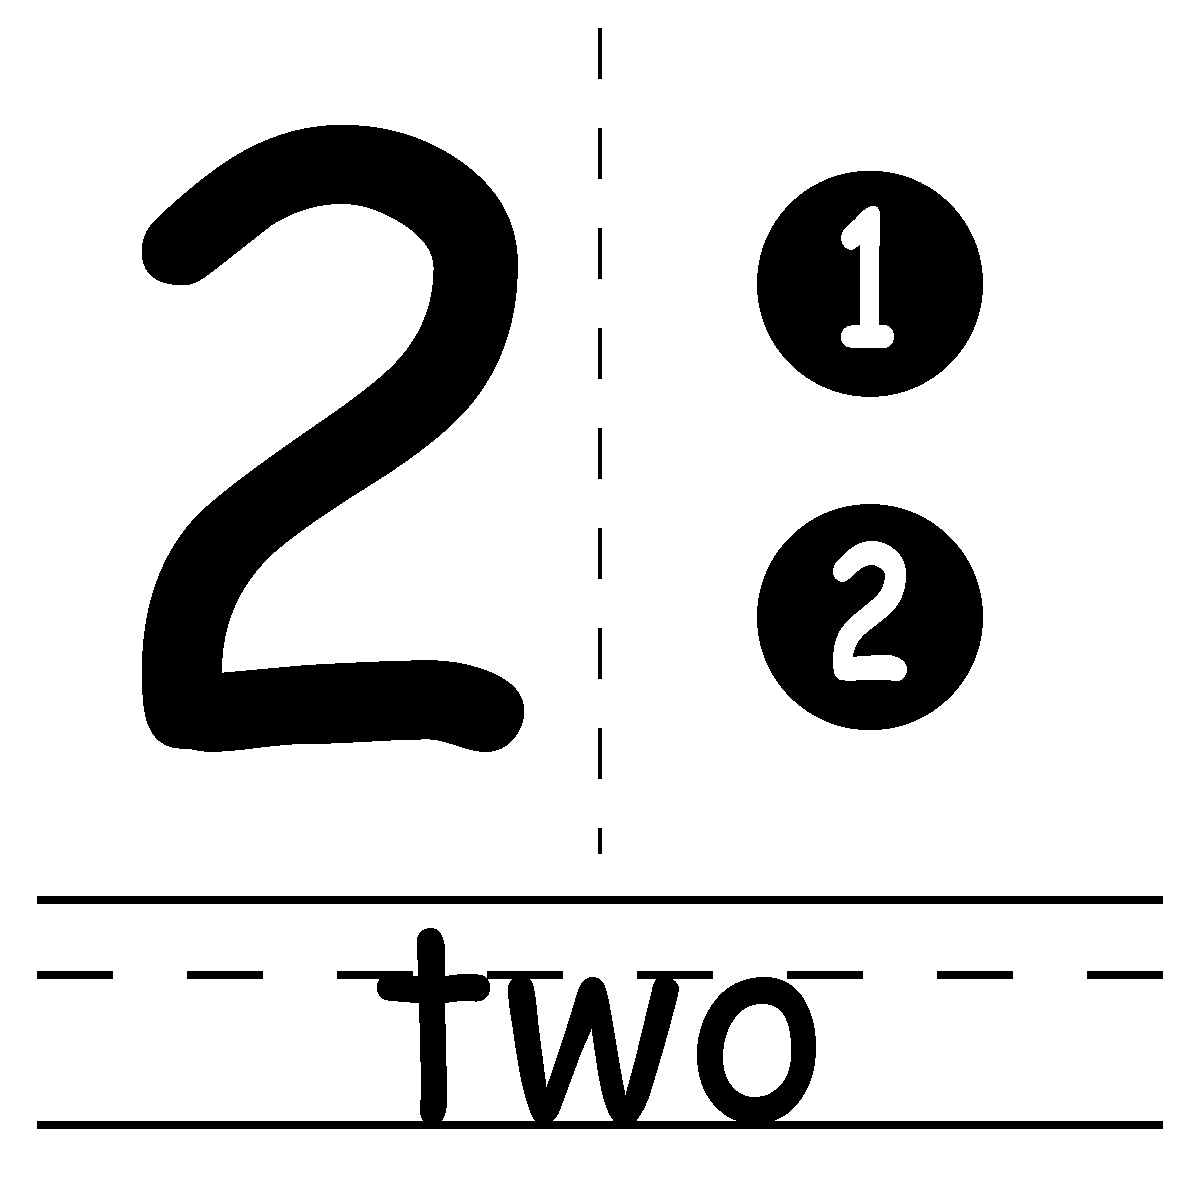 Free Number 2 Clipart Black And White, Download Free Clip.